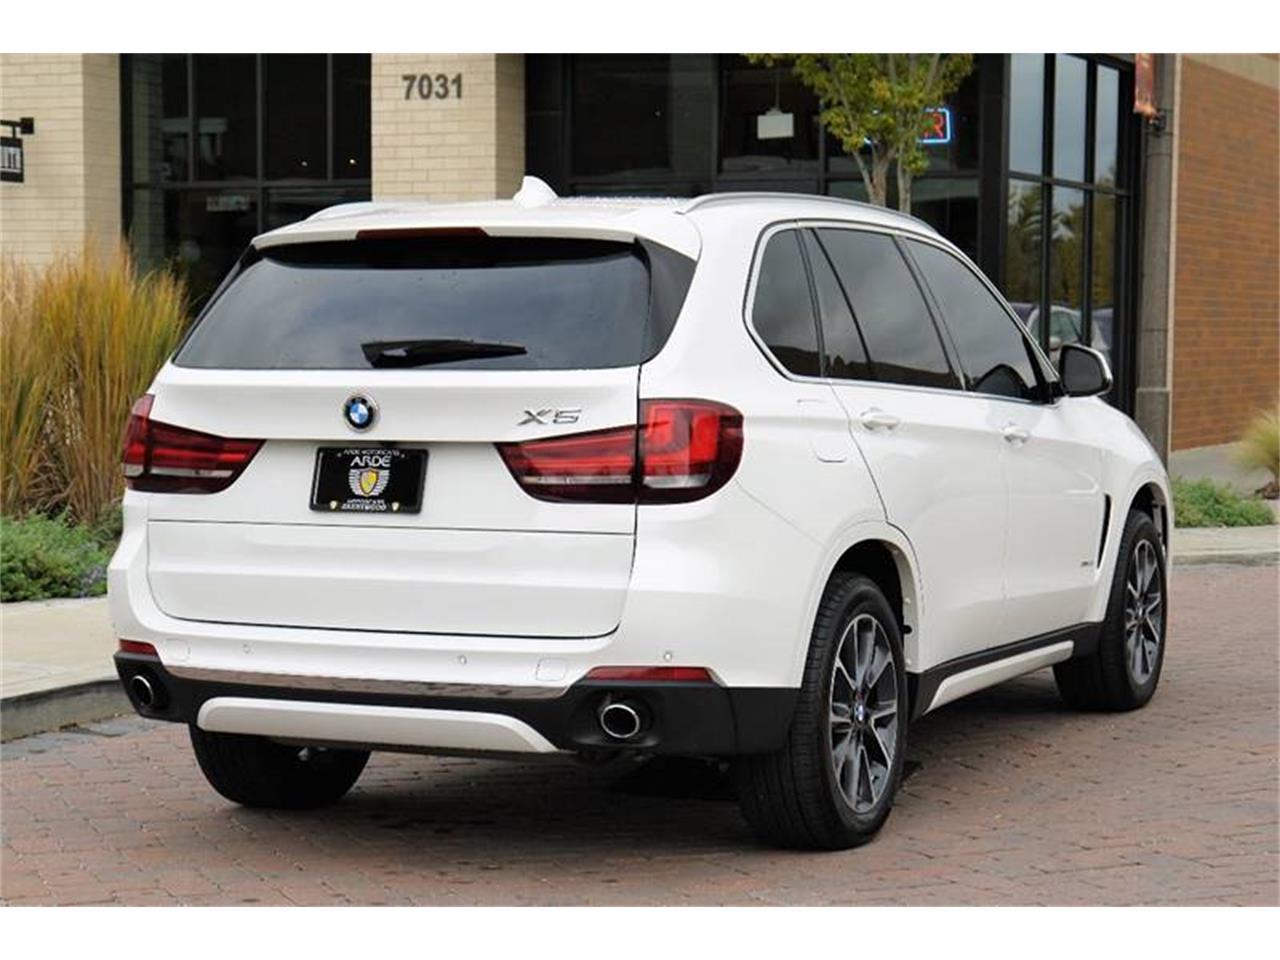 Large Picture of 2017 BMW X5 located in Tennessee - $56,800.00 - MOC5